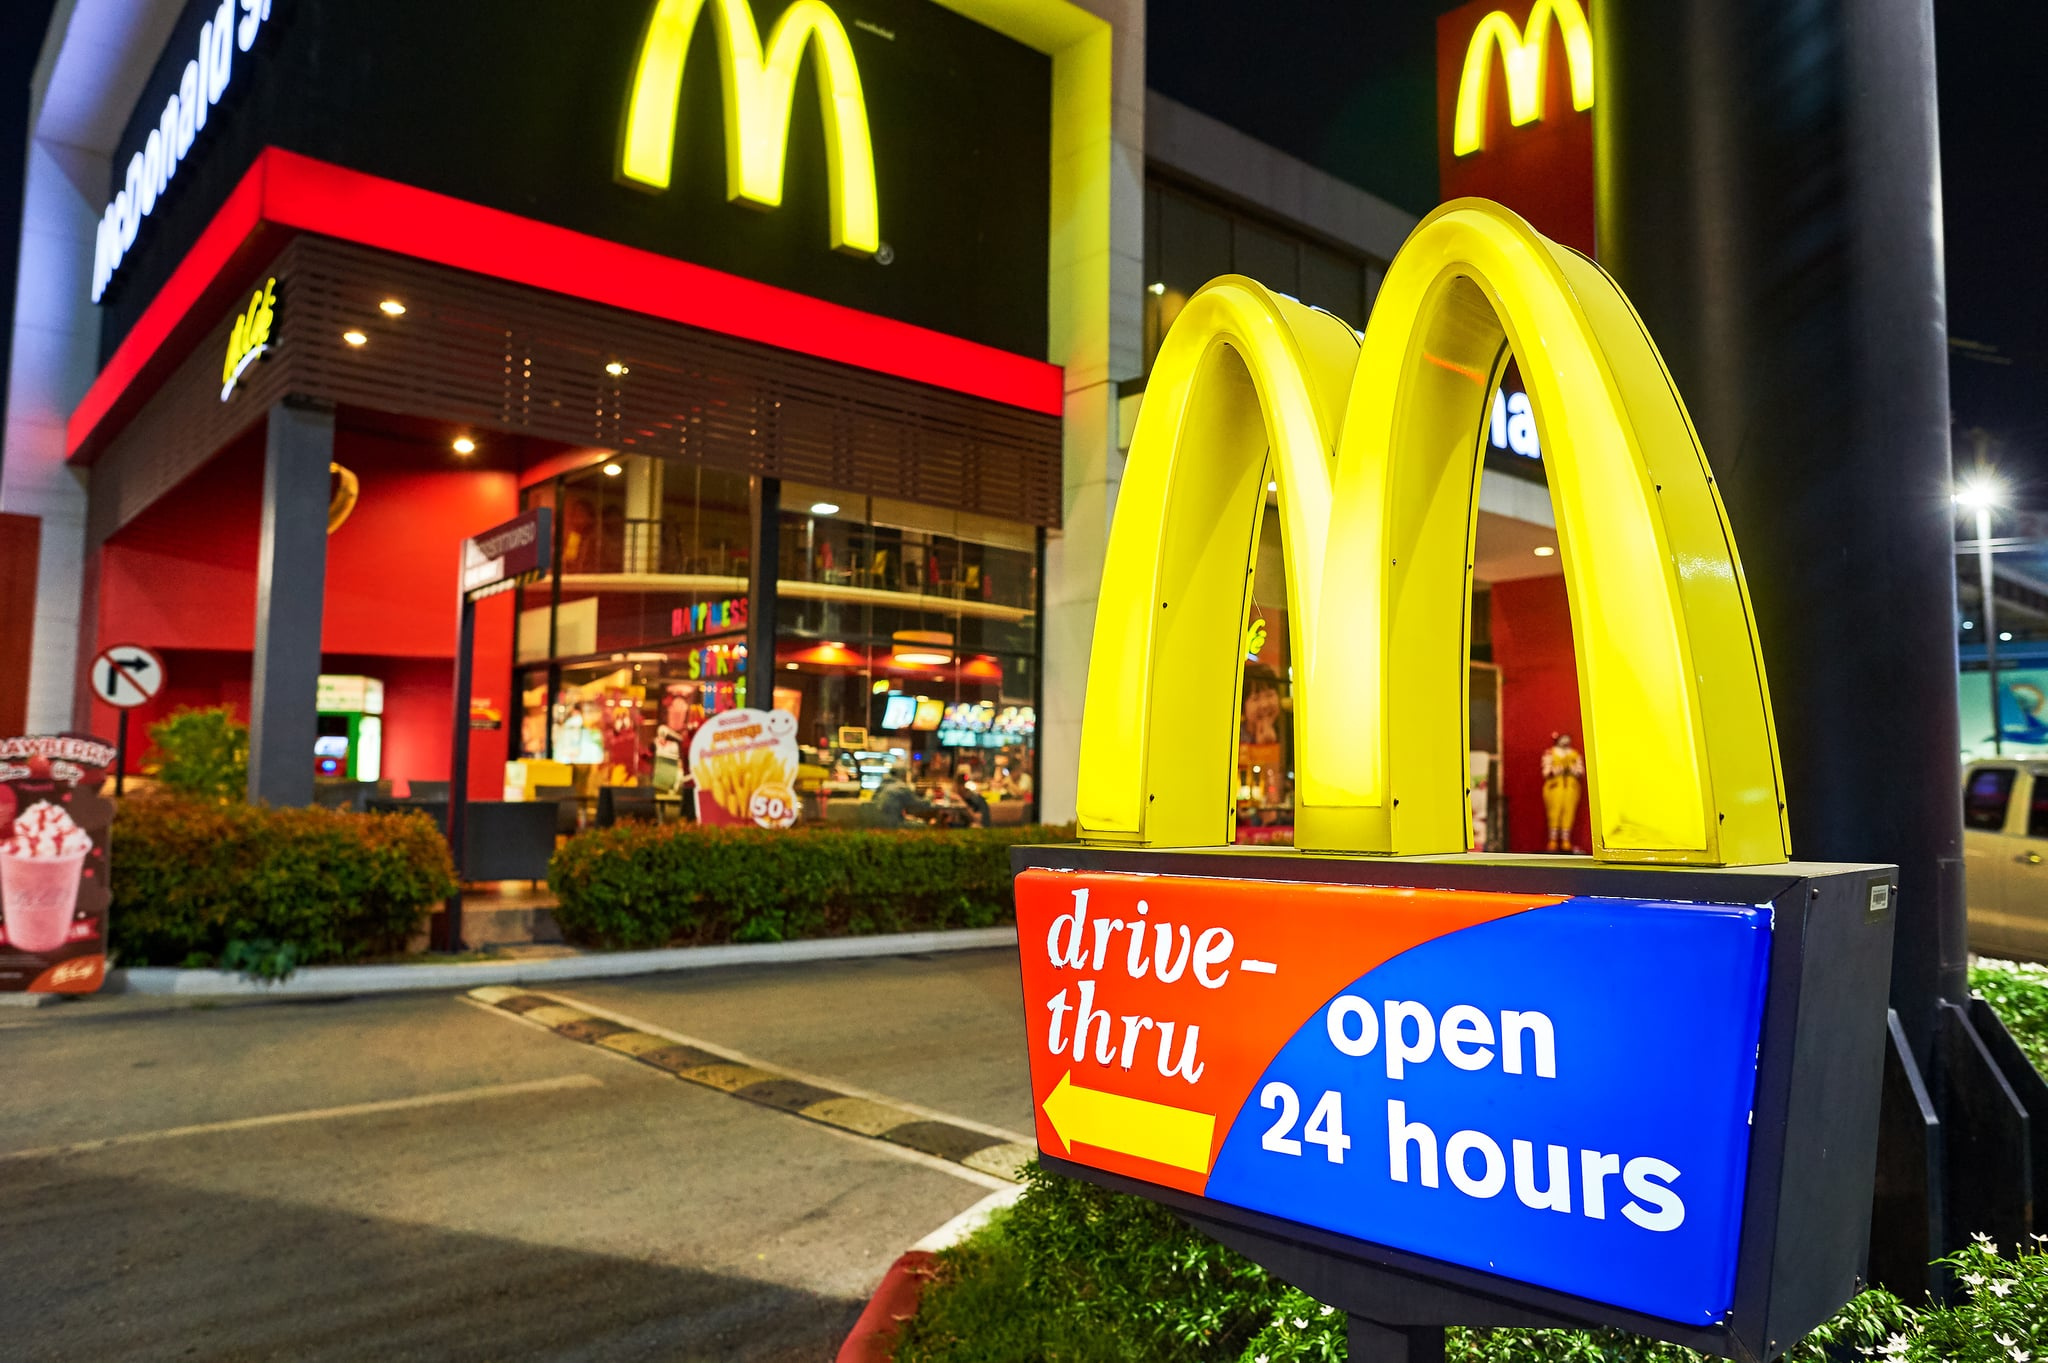 McDonald's Walk-Through Pedestrian Lane | POPSUGAR Food